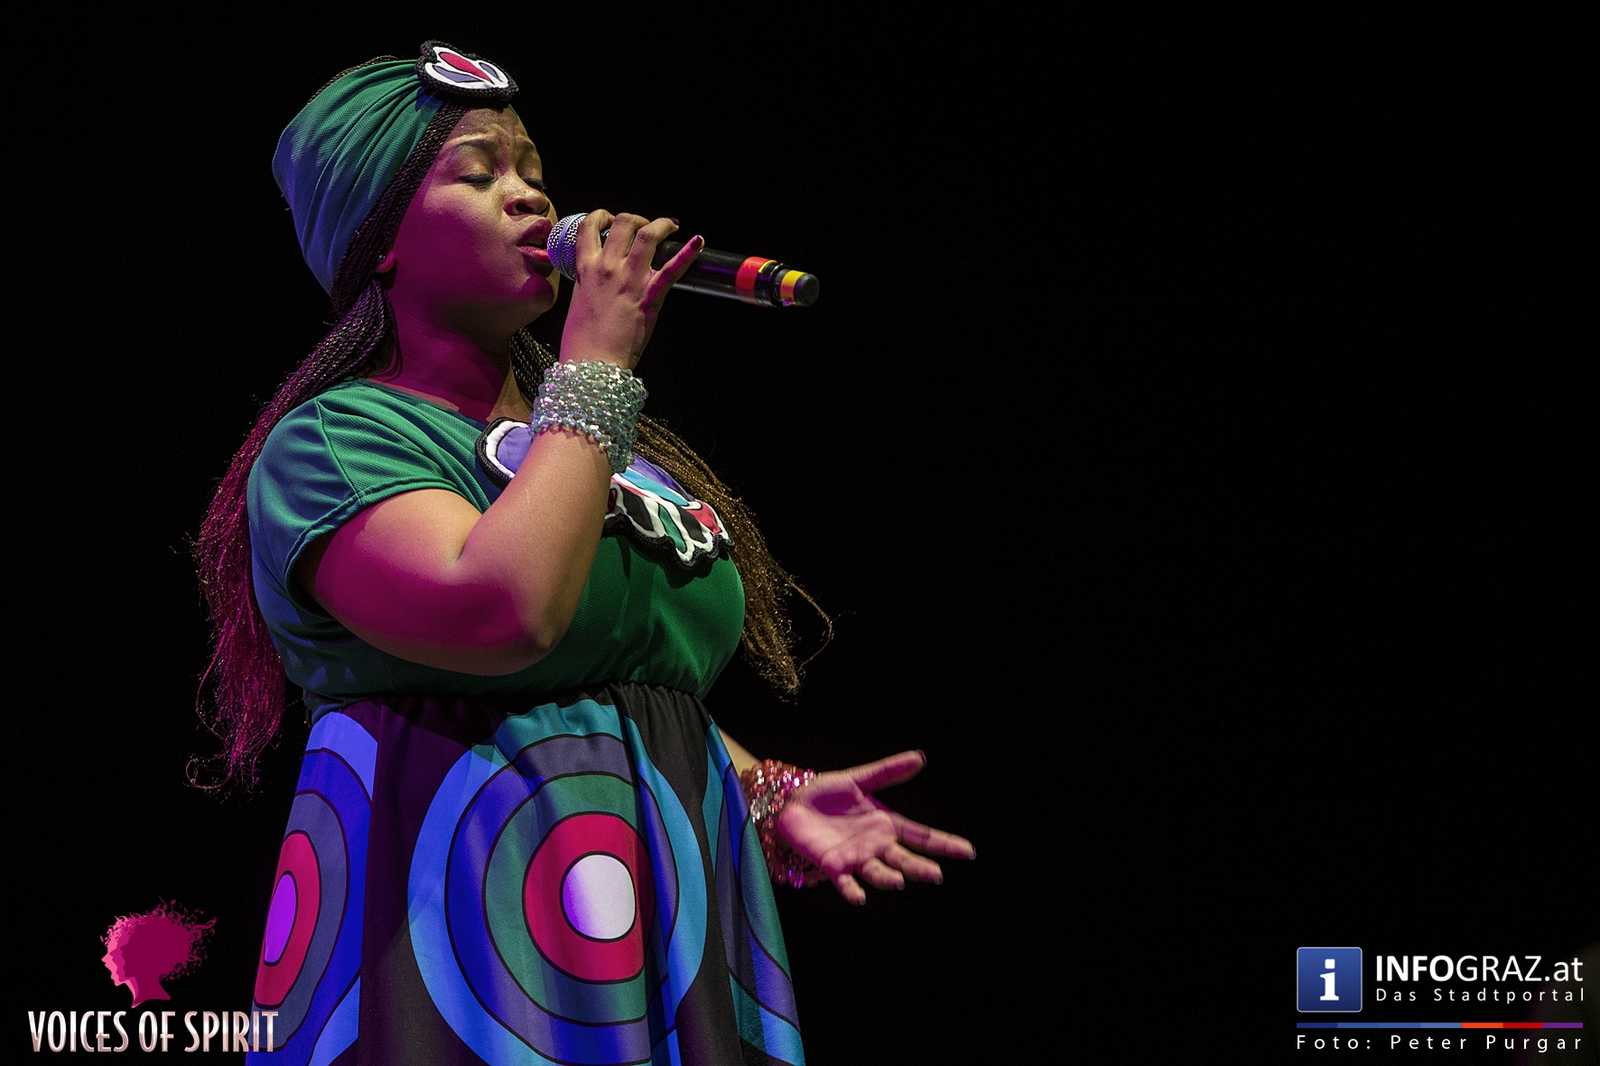 soweto gospel choir internationales chorfestival statdthalle graz voices of spirit eroeffnung festivals 2016 037